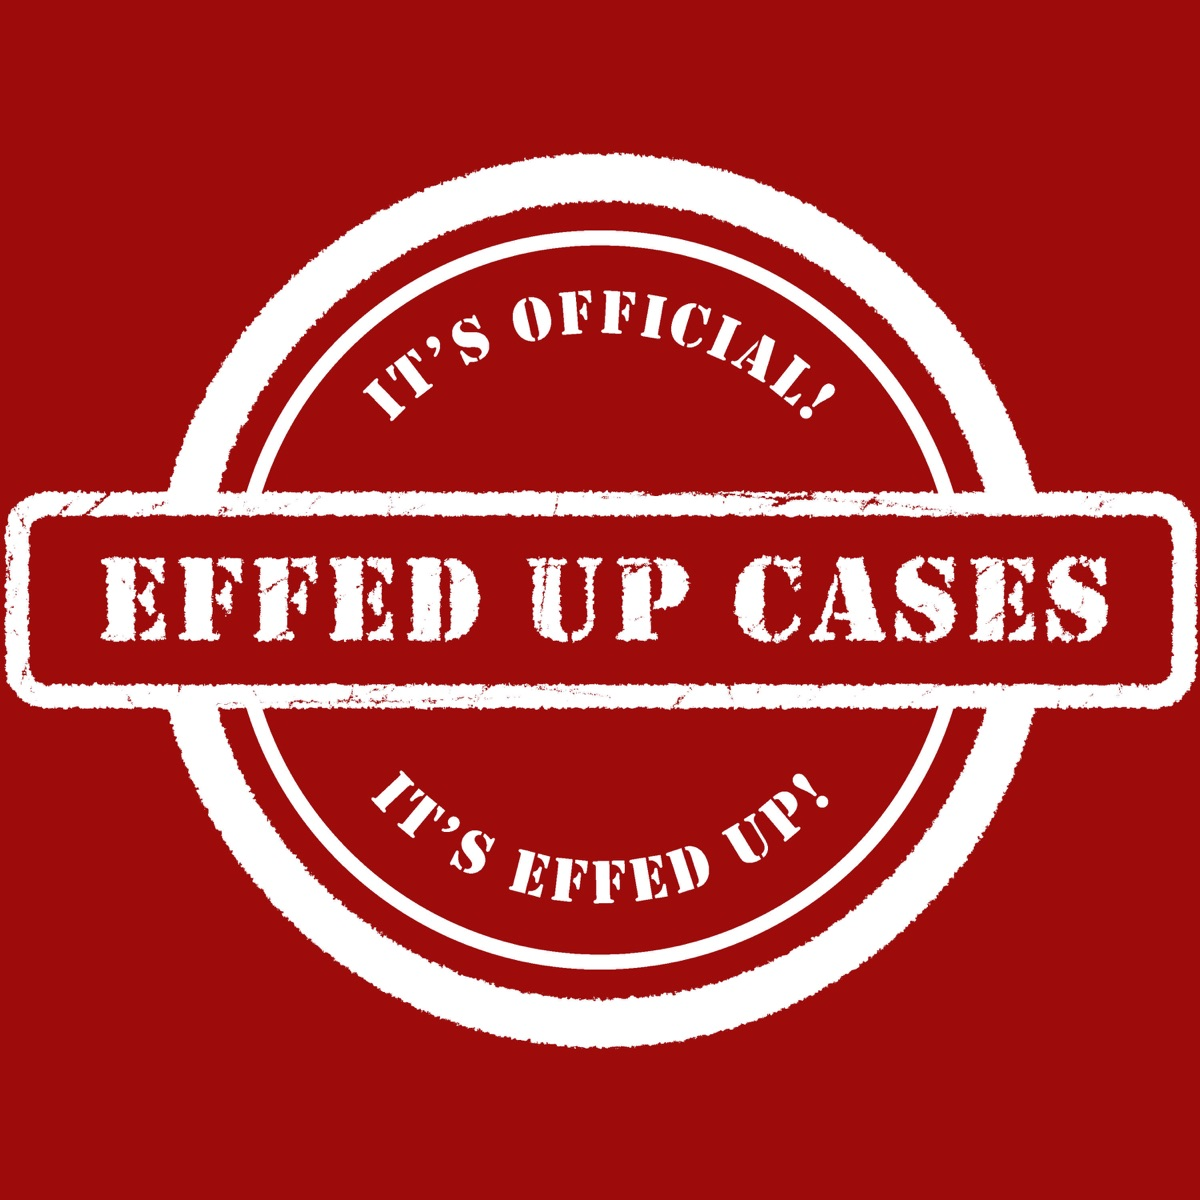 Effed Up Cases